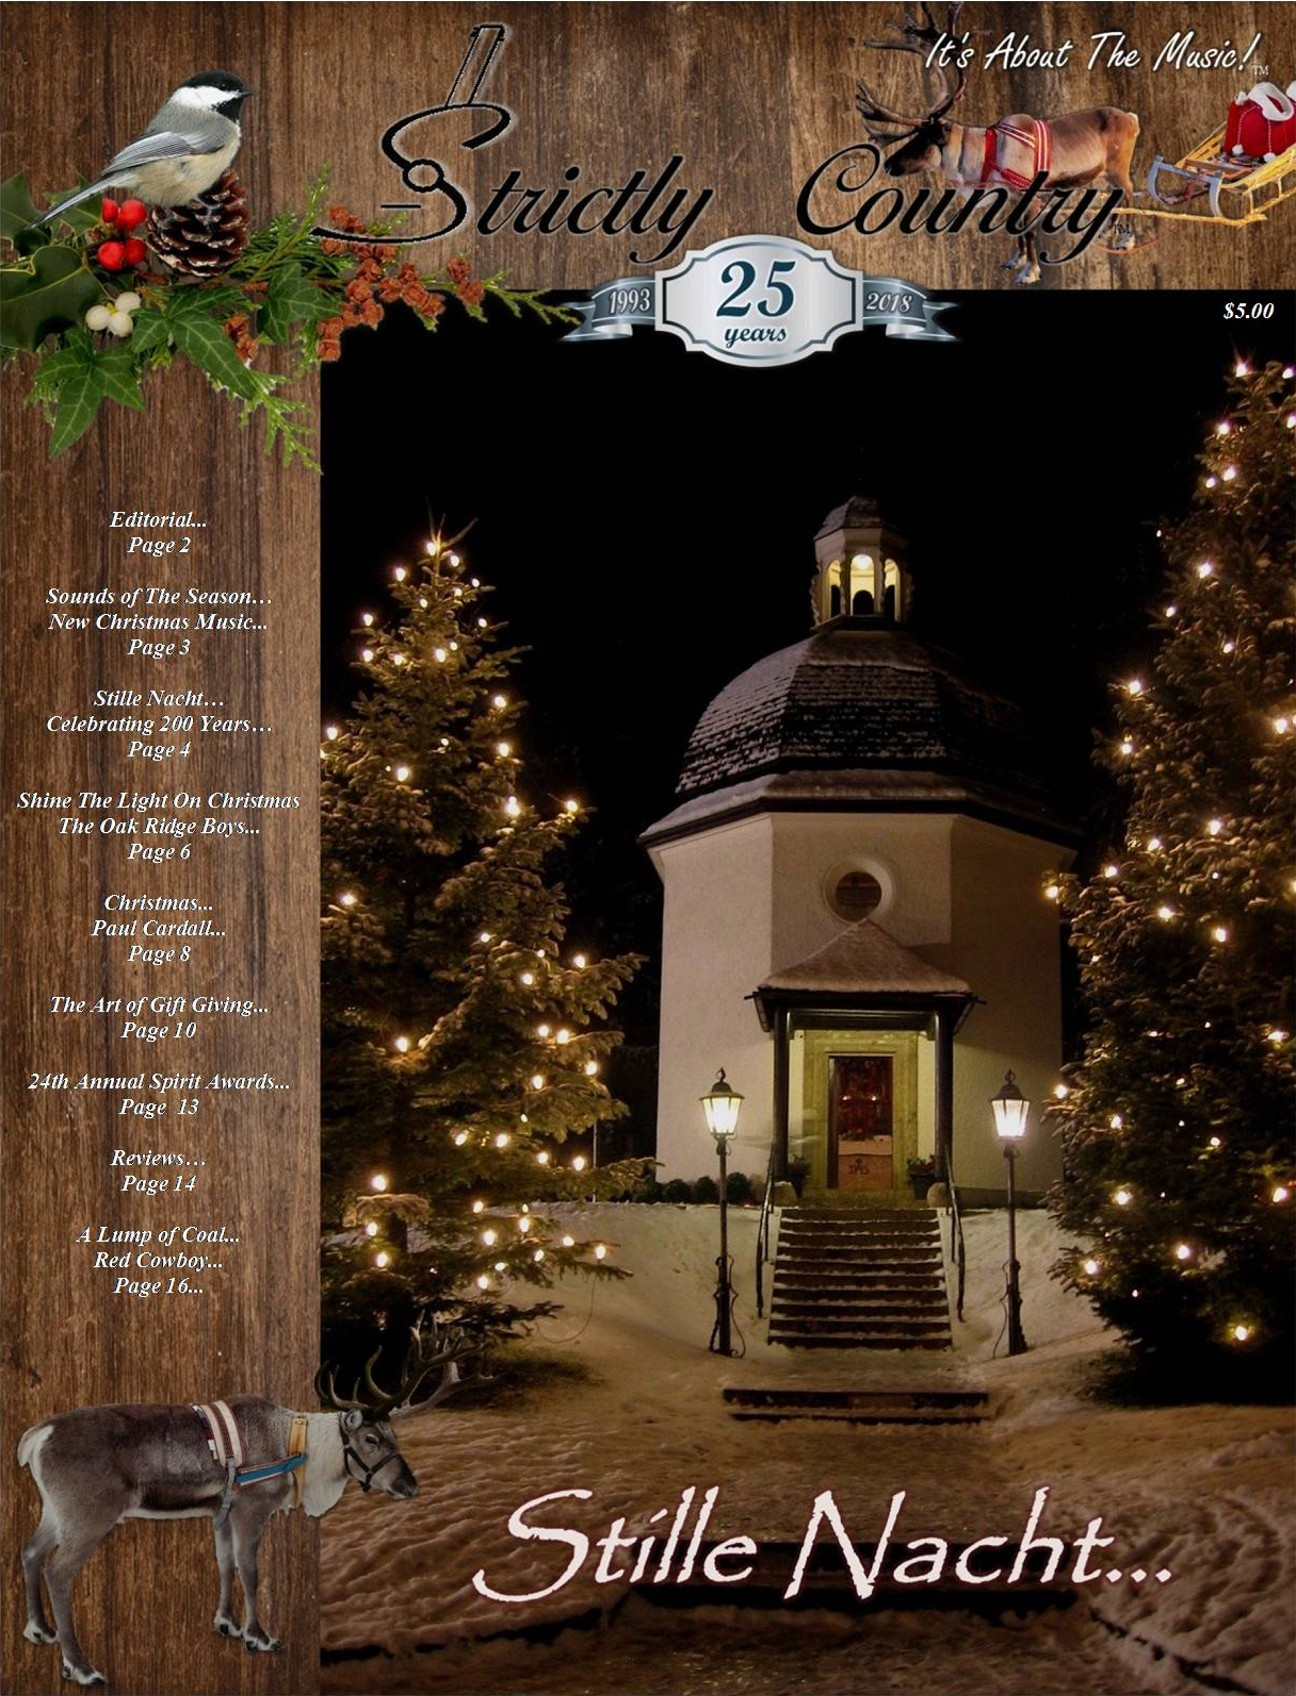 Strictly Country Magazine - Volume 25 Issue 6